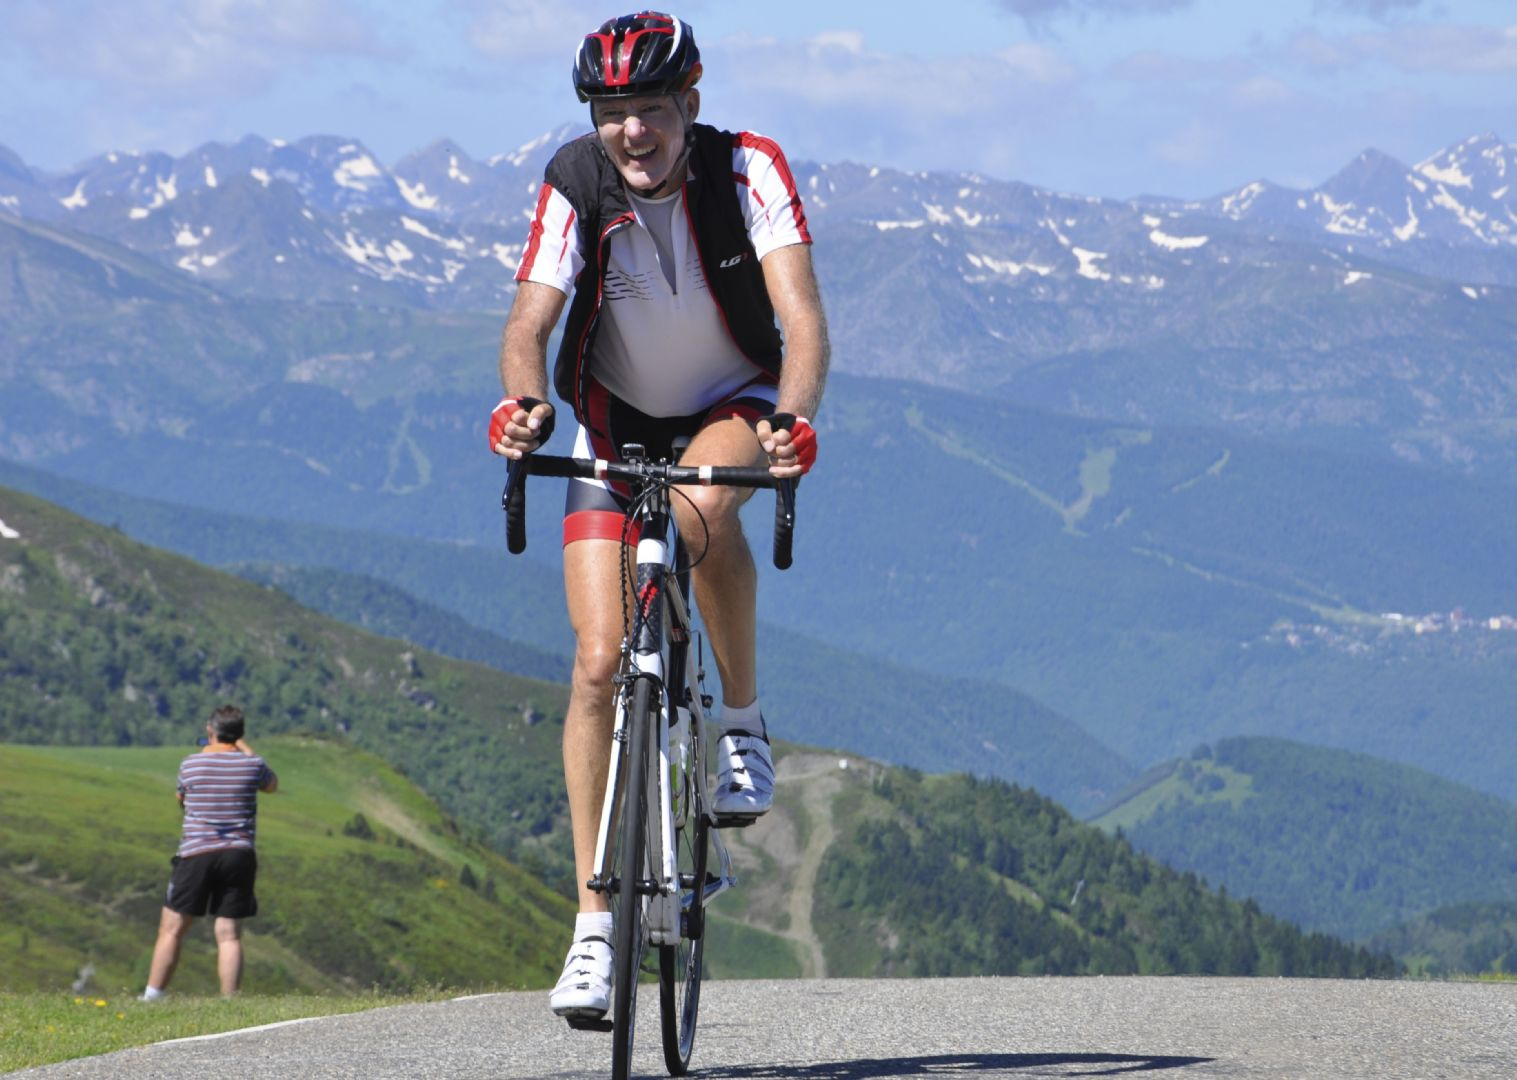 francepyrenees8.jpg - France - Trans Pyrenees Challenge - Guided Road Cycling Holiday - Road Cycling